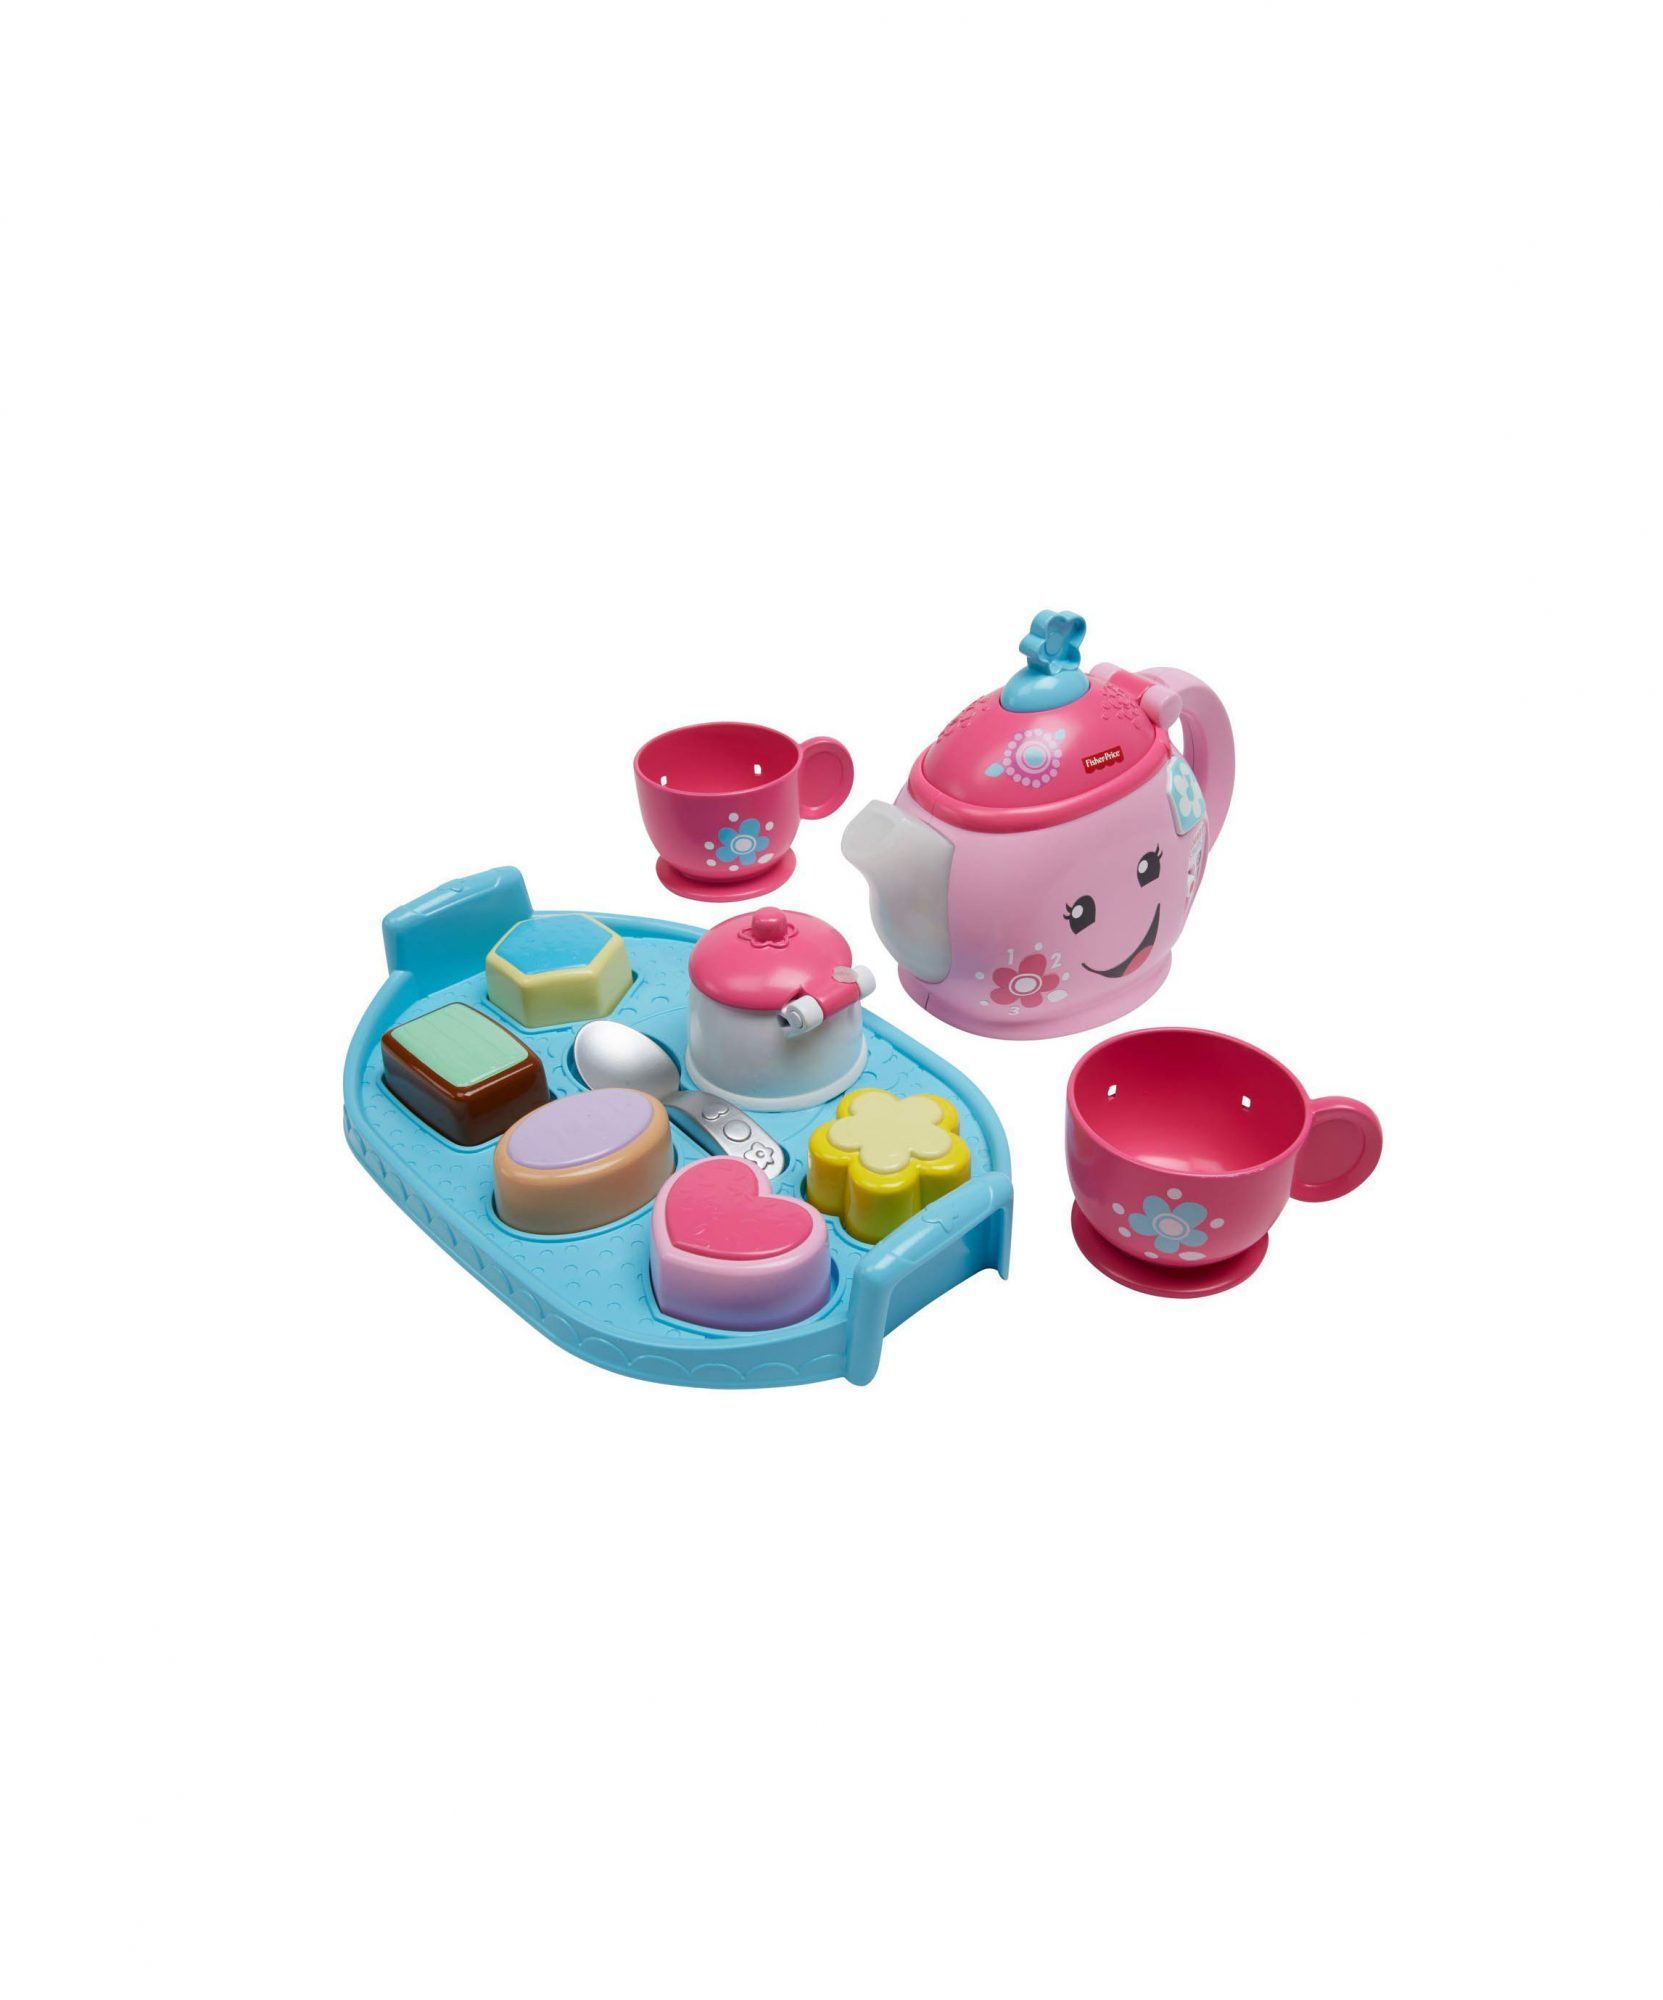 Fisher Price Laugh & Learn Sweet Manners Tea Set